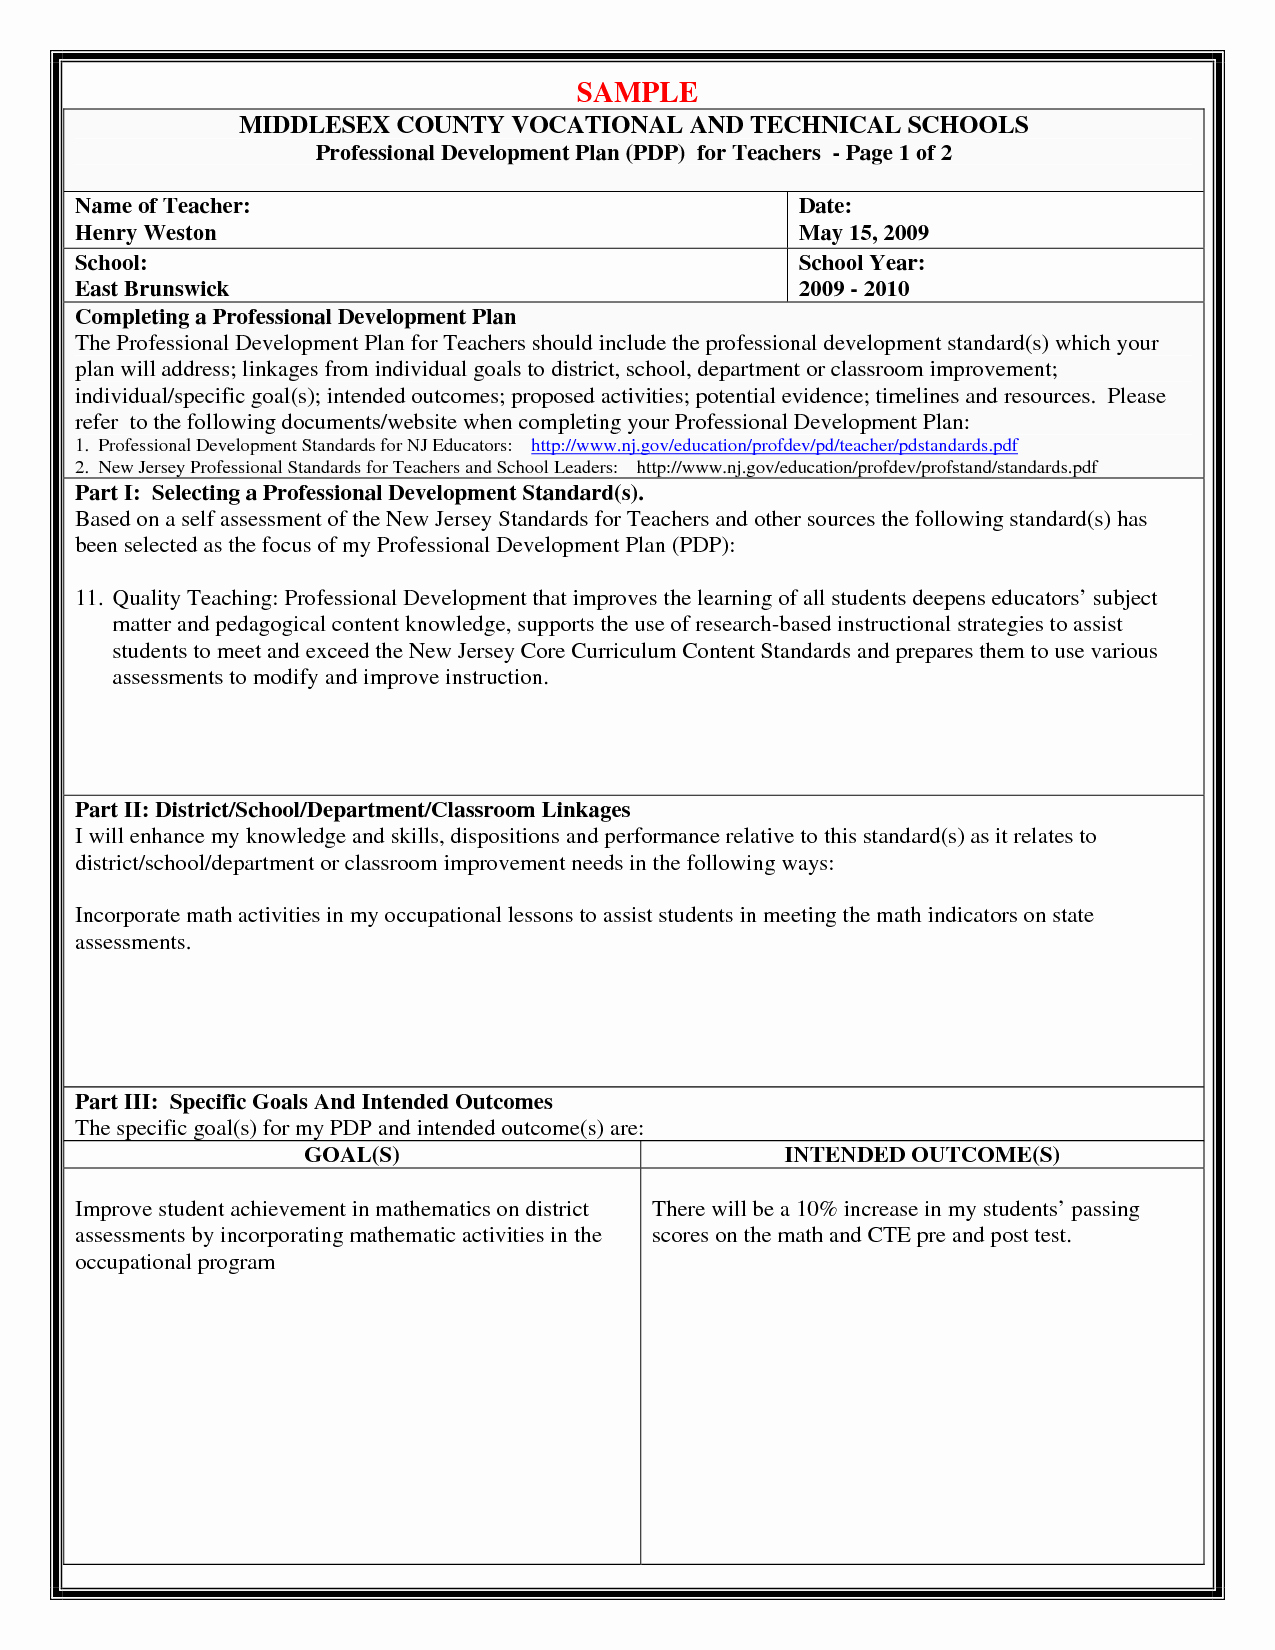 Professional Growth Plan Template Beautiful How to Write A Professional Development Plan Examples